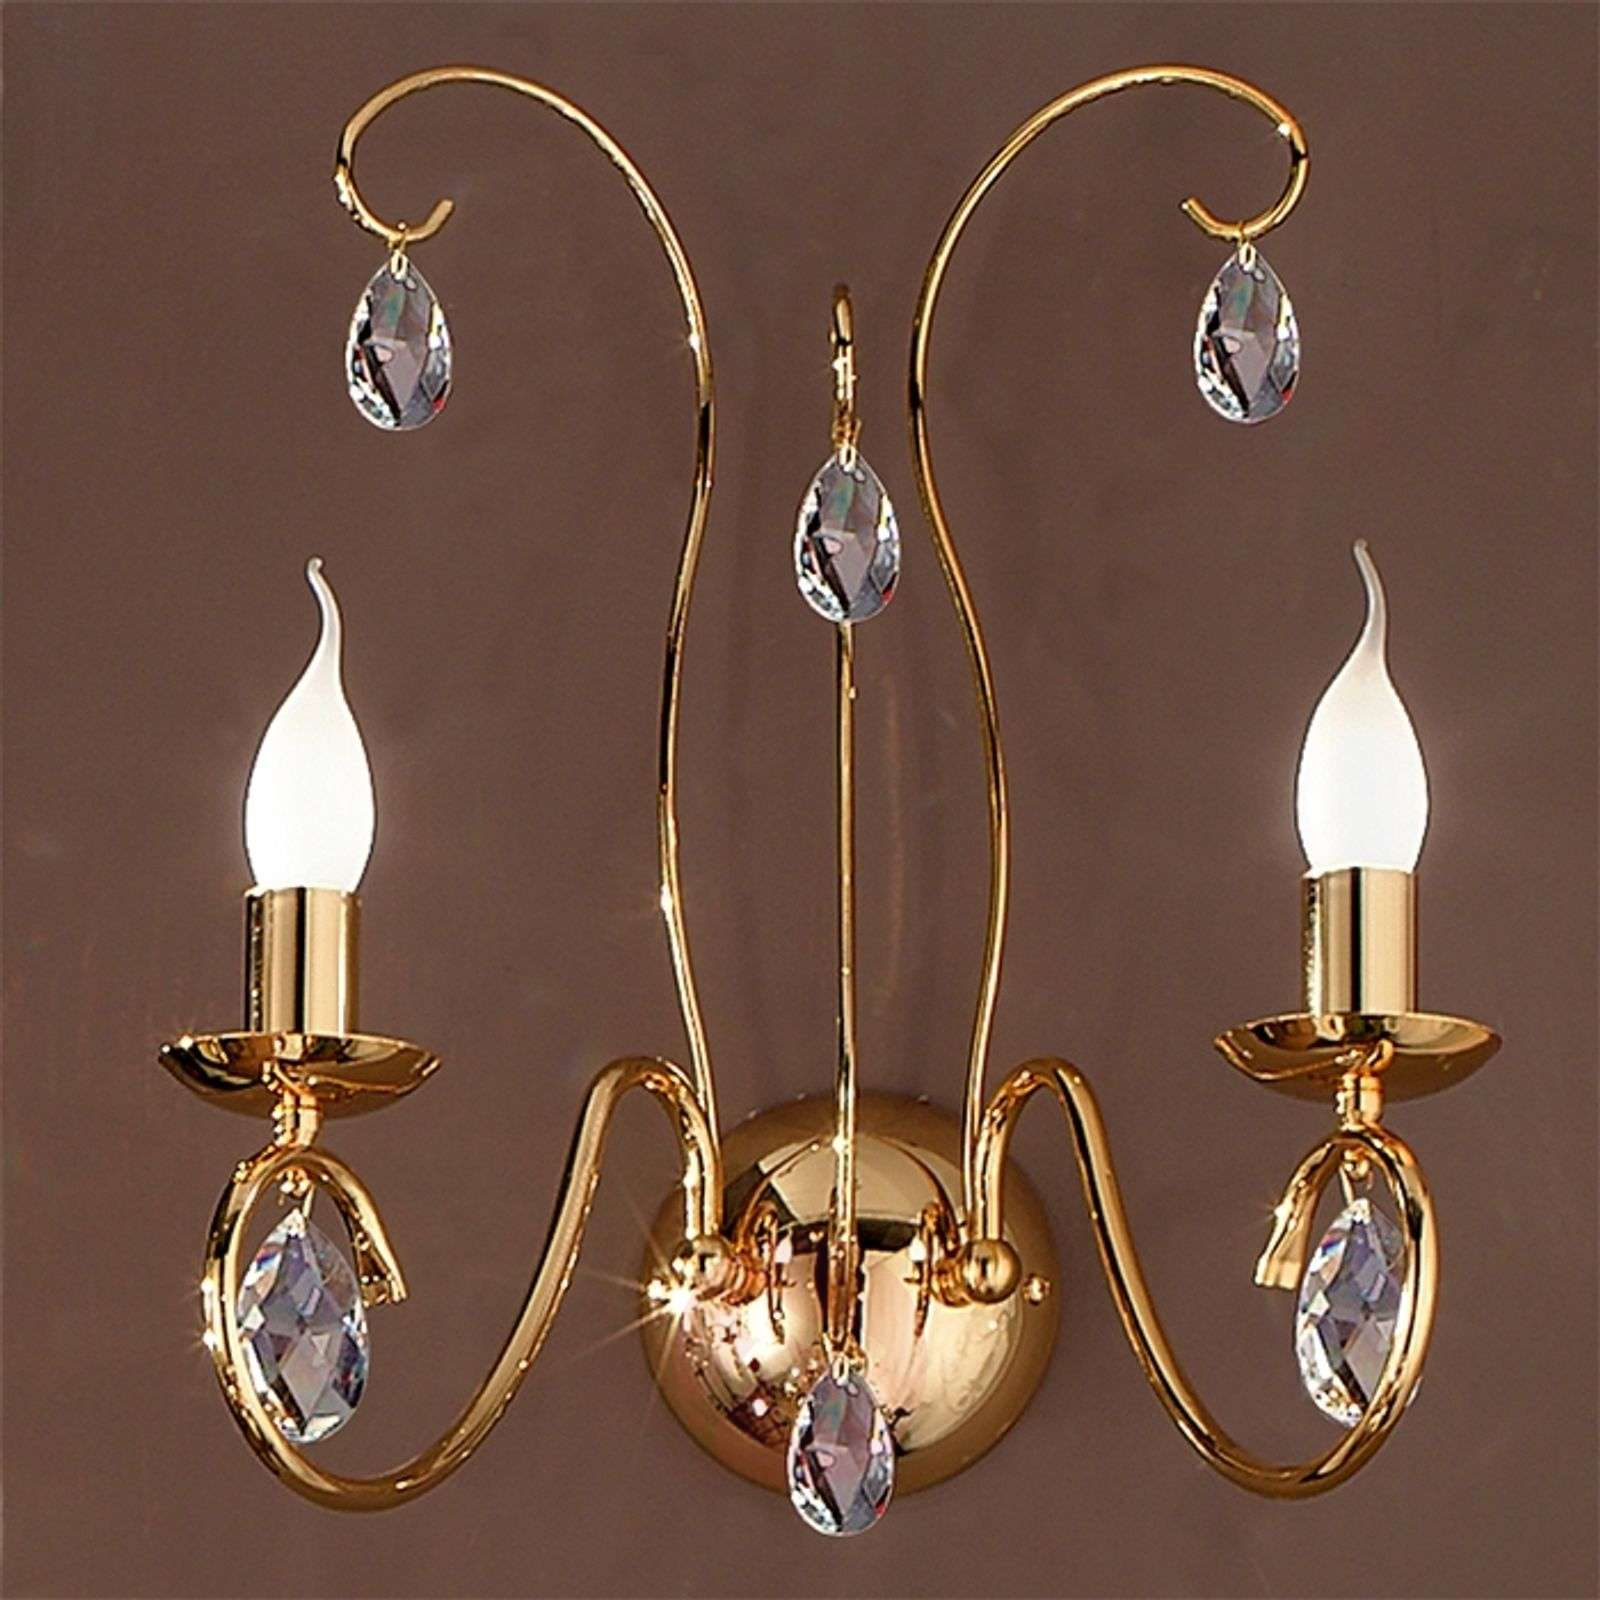 Fioretto Wall Light Graceful Two Bulbs Gold-7253036-01